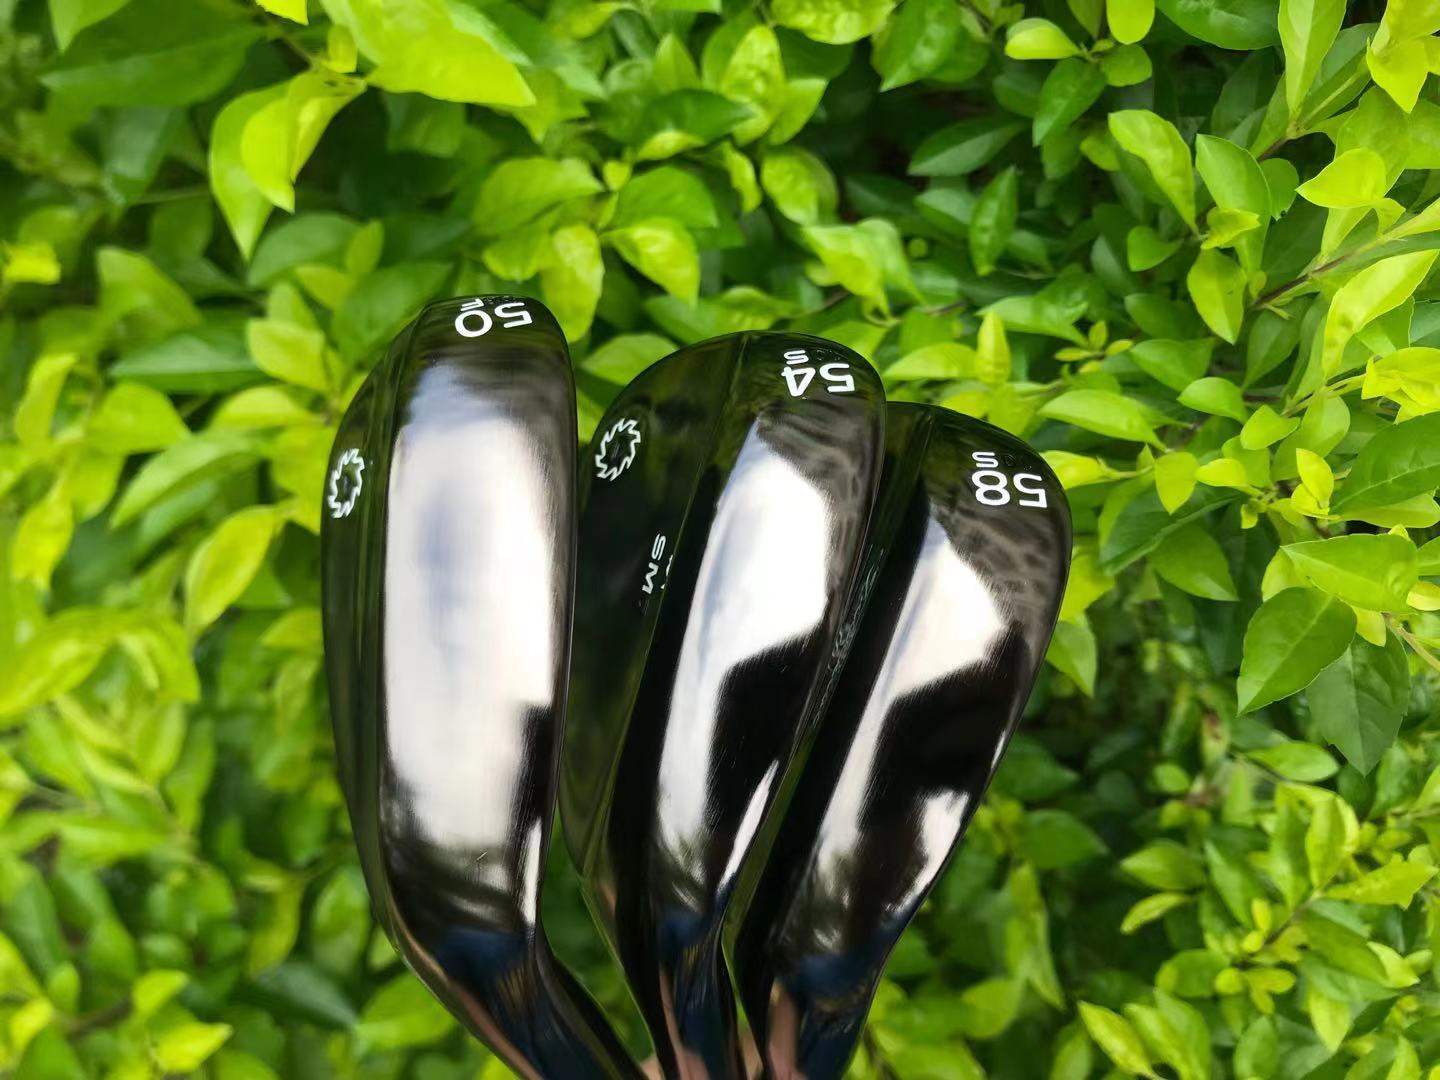 Golf clubs Golf wedges Brown Right Handed 50-08F 54-10S 58-10S degrees  S300 or R300 Steel shaft